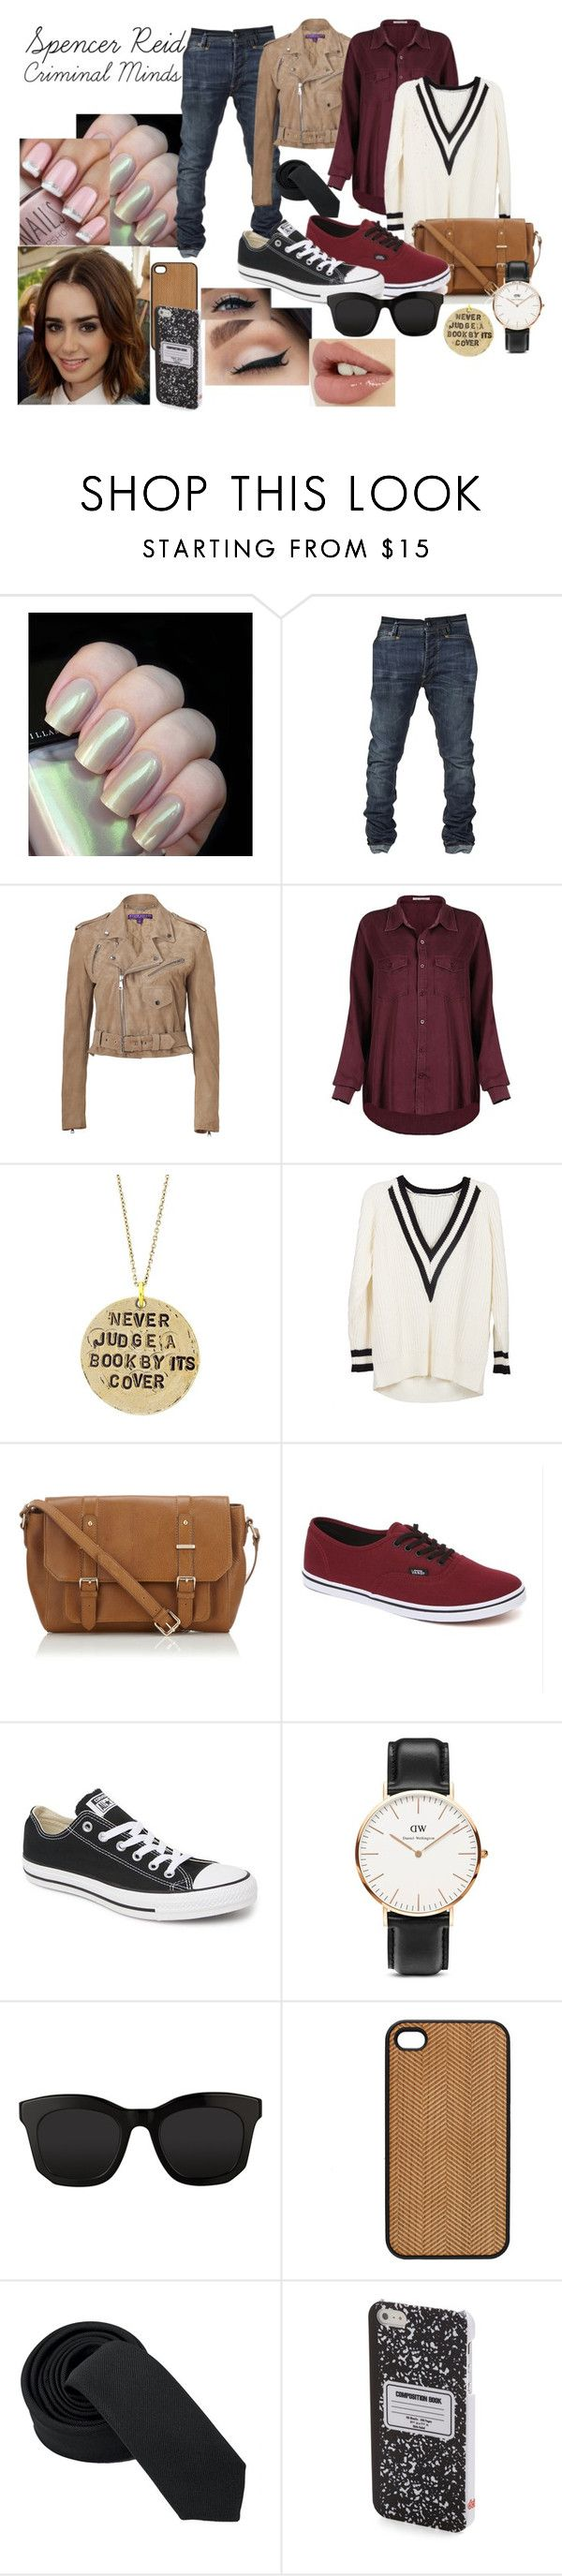 """Spencer Reid - Criminal Minds"" by nerd-inspired ❤ liked on Polyvore featuring Ralph Lauren Collection, Alisa Michelle, Monsoon, Vans, Converse, Daniel Wellington, STELLA McCARTNEY, Terracotta New York and DCI"